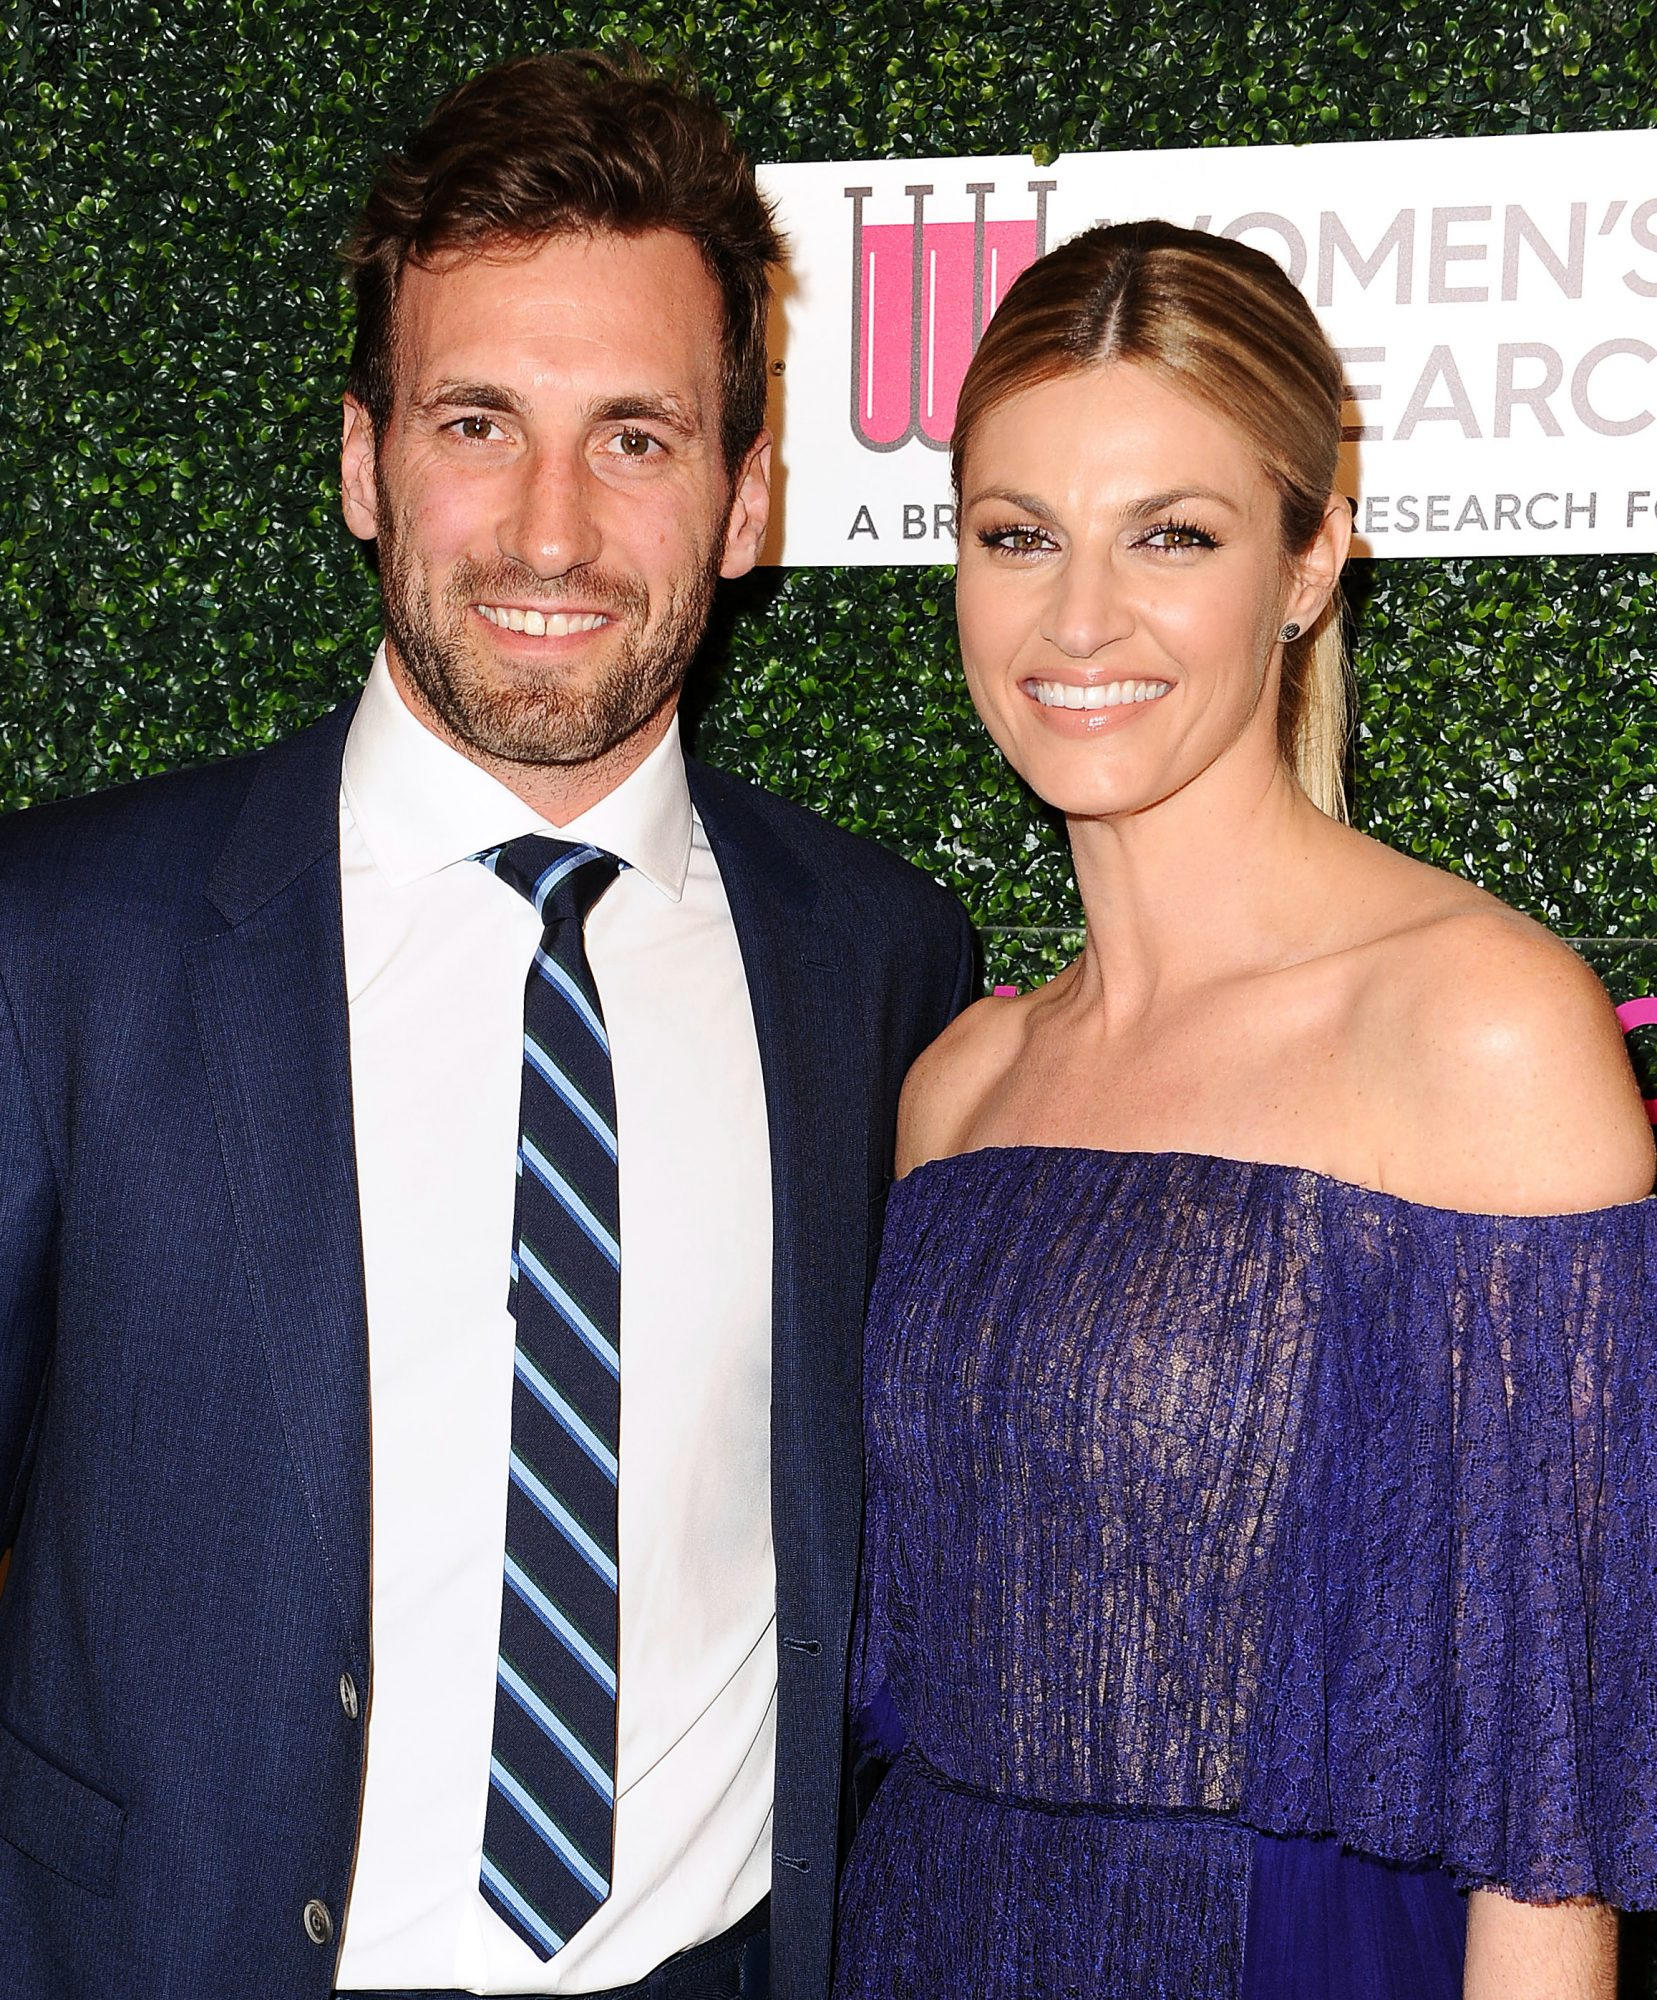 BEVERLY HILLS, CA - FEBRUARY 16: Jarret Stoll and Erin Andrews attend An Unforgettable Evening at the Beverly Wilshire Four Seasons Hotel on February 16, 2017 in Beverly Hills, California.